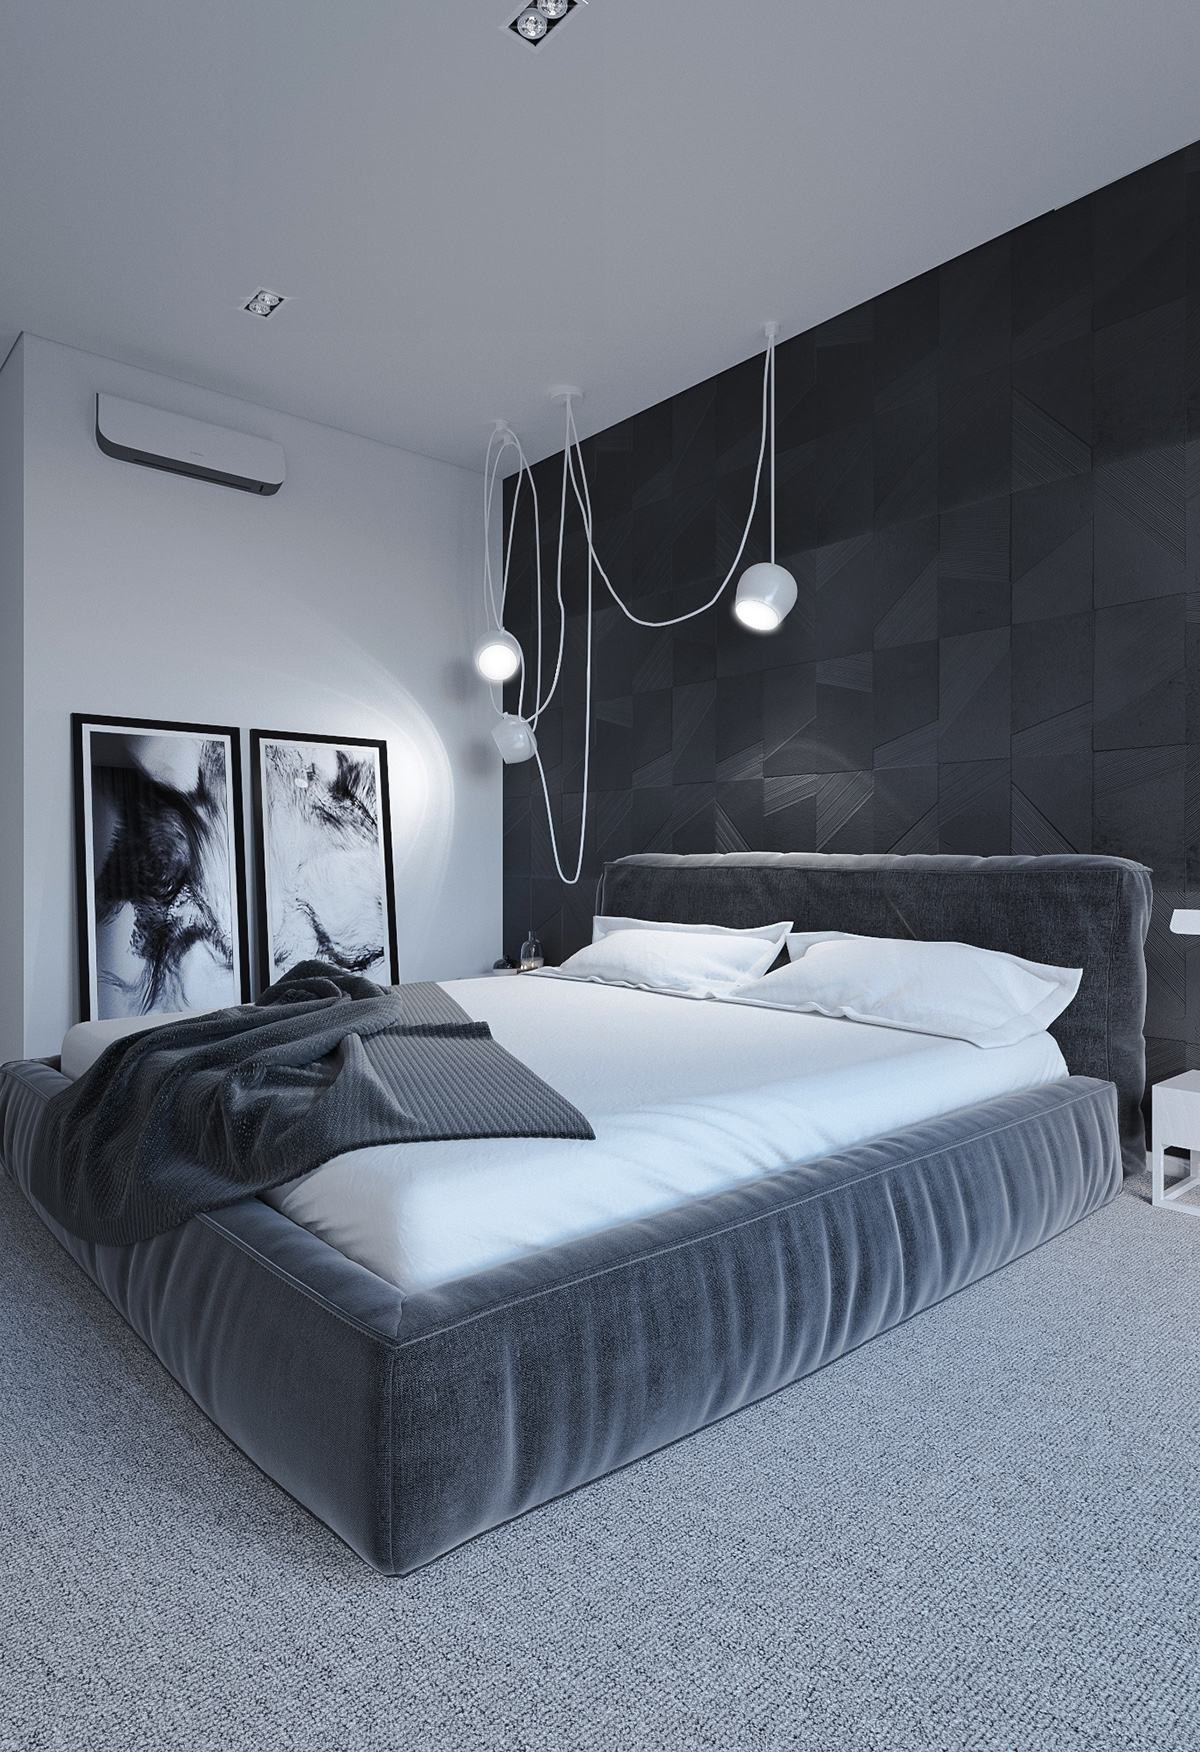 Best ideas about Black Bedroom Ideas . Save or Pin 6 Dark Bedrooms Designs To Inspire Sweet Dreams Now.